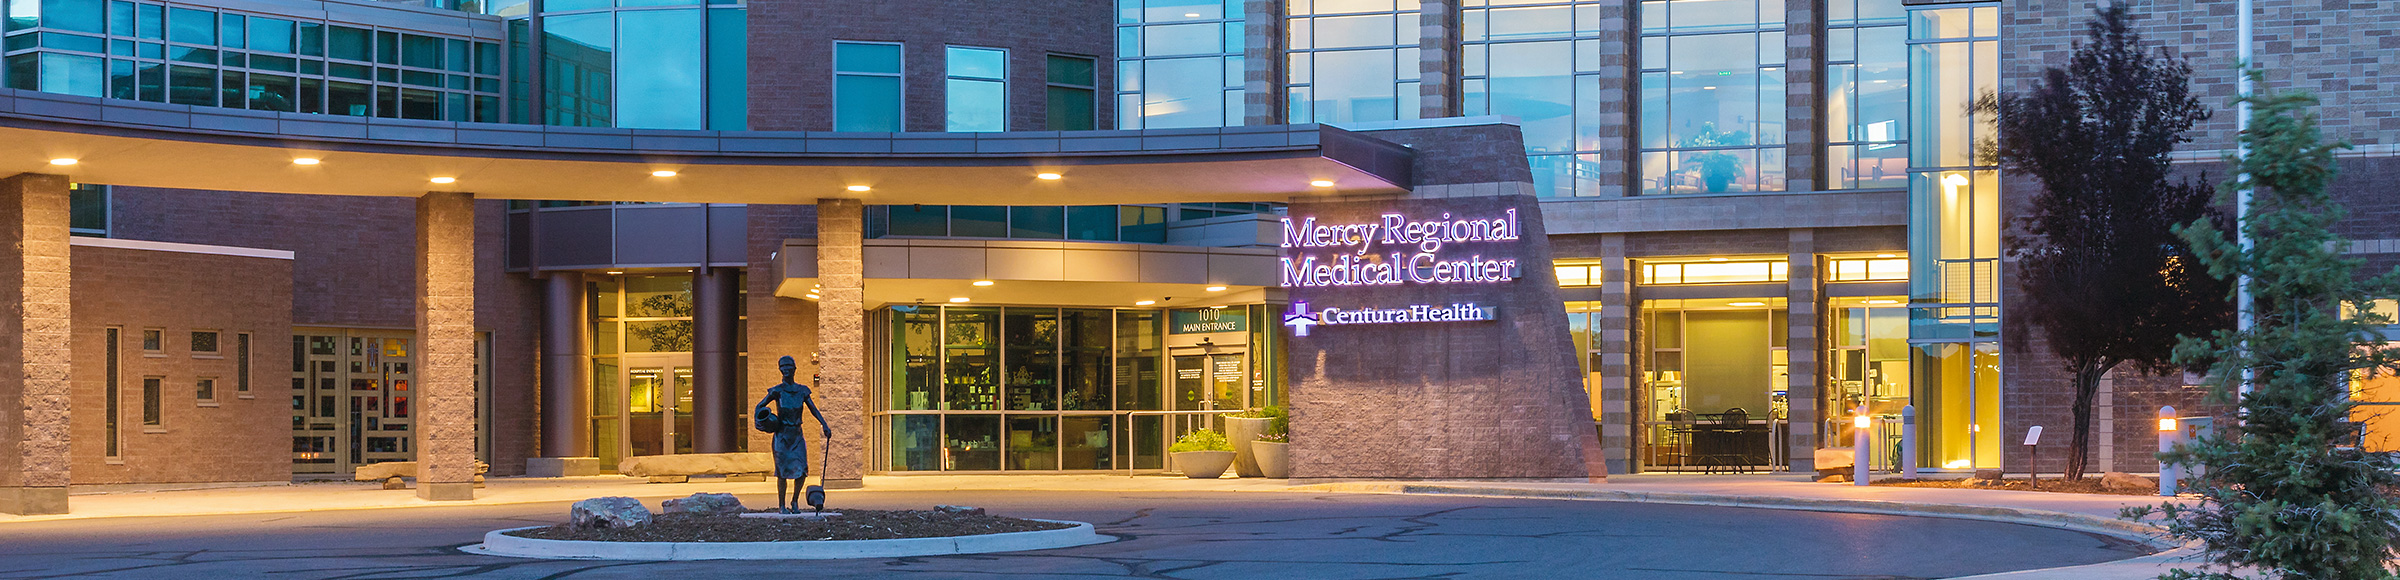 Mercy Regional Medical Center